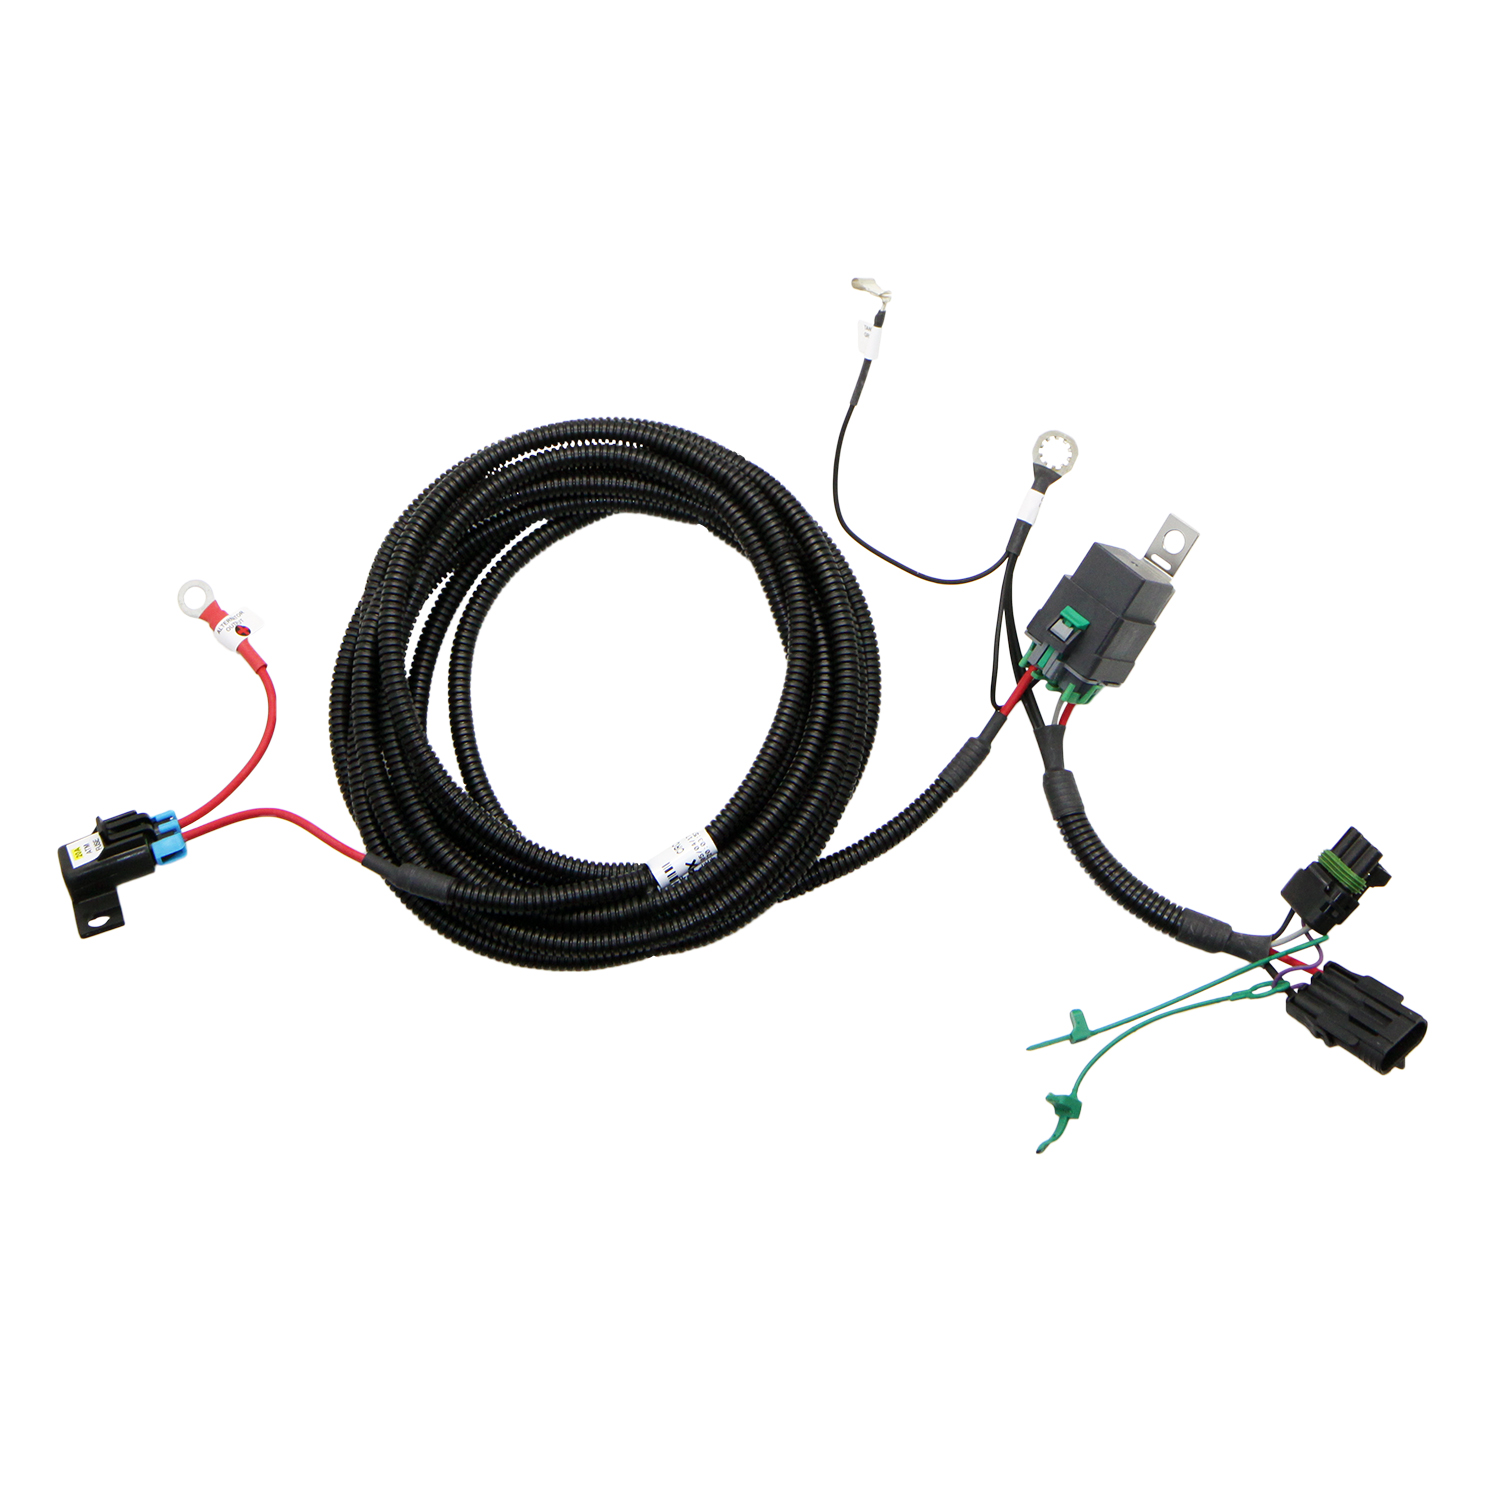 g7 fuel pump wiring harness tb (fpwh 006) fuel pump hotwire GM Fuel Pump Wiring Diagram g7 fuel pump wiring harness tb